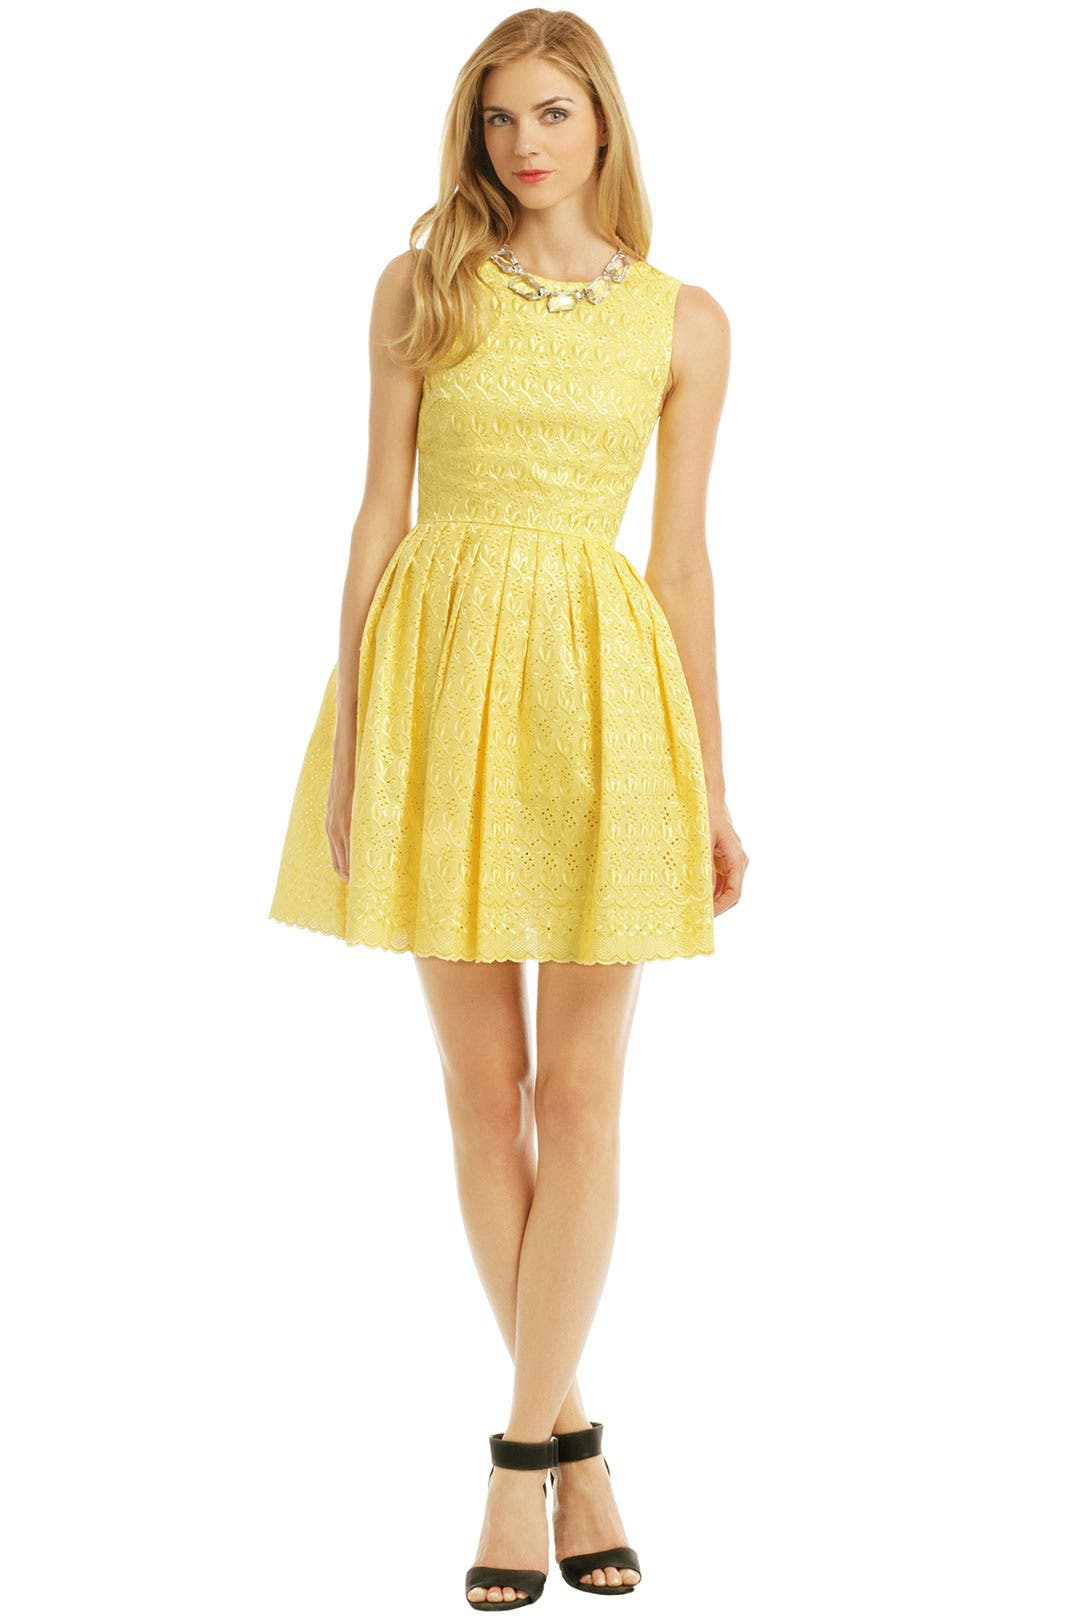 Maize Julia Dress by allison parris